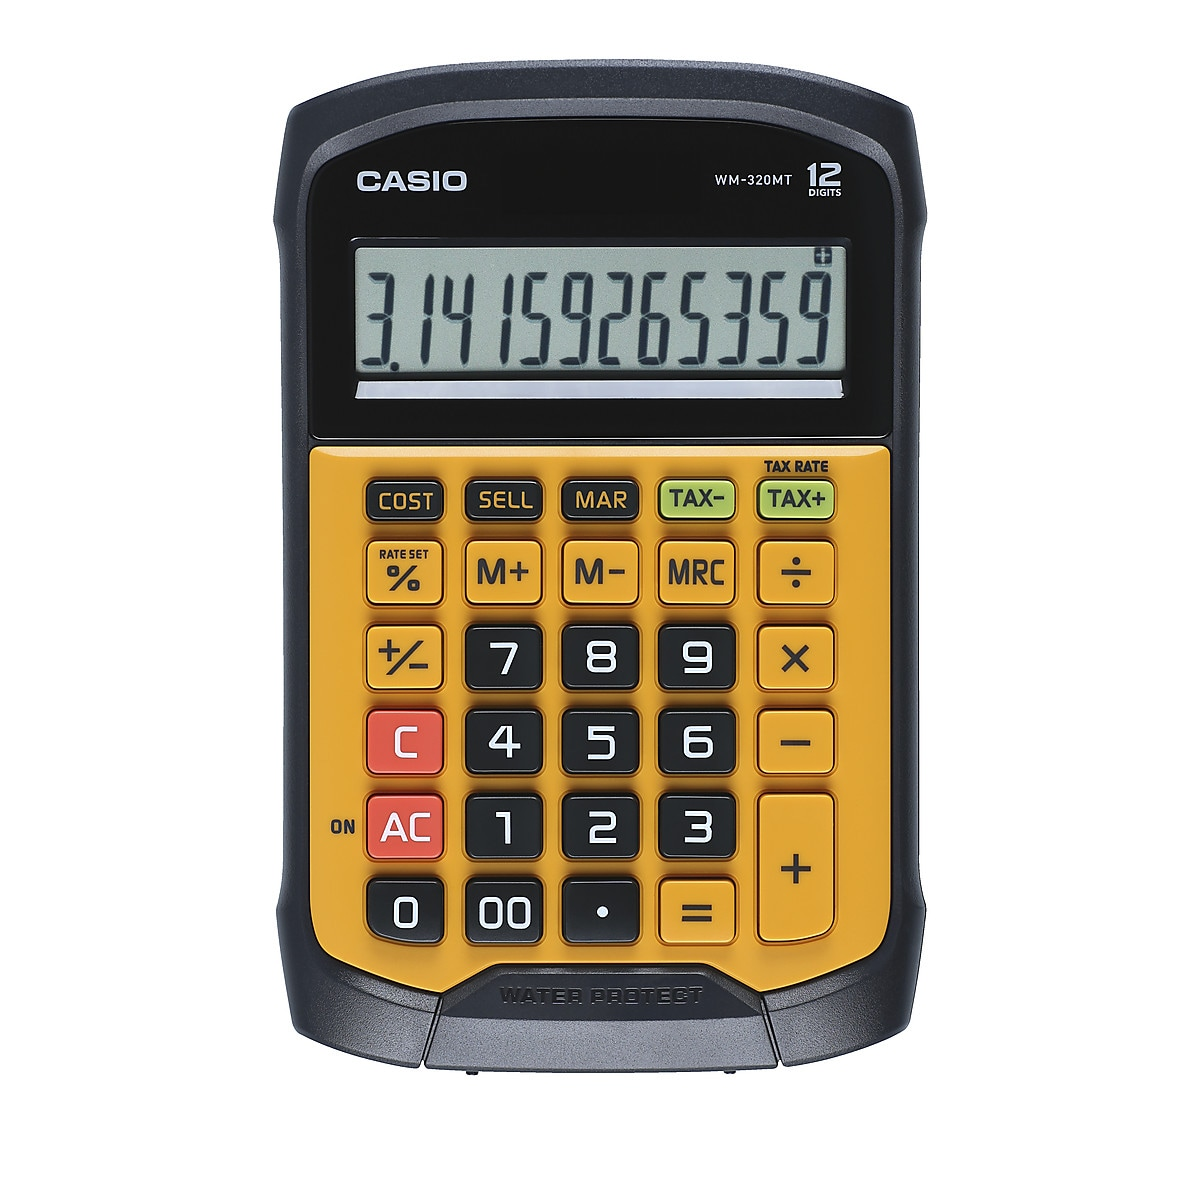 Casio WM-320MT Calculator